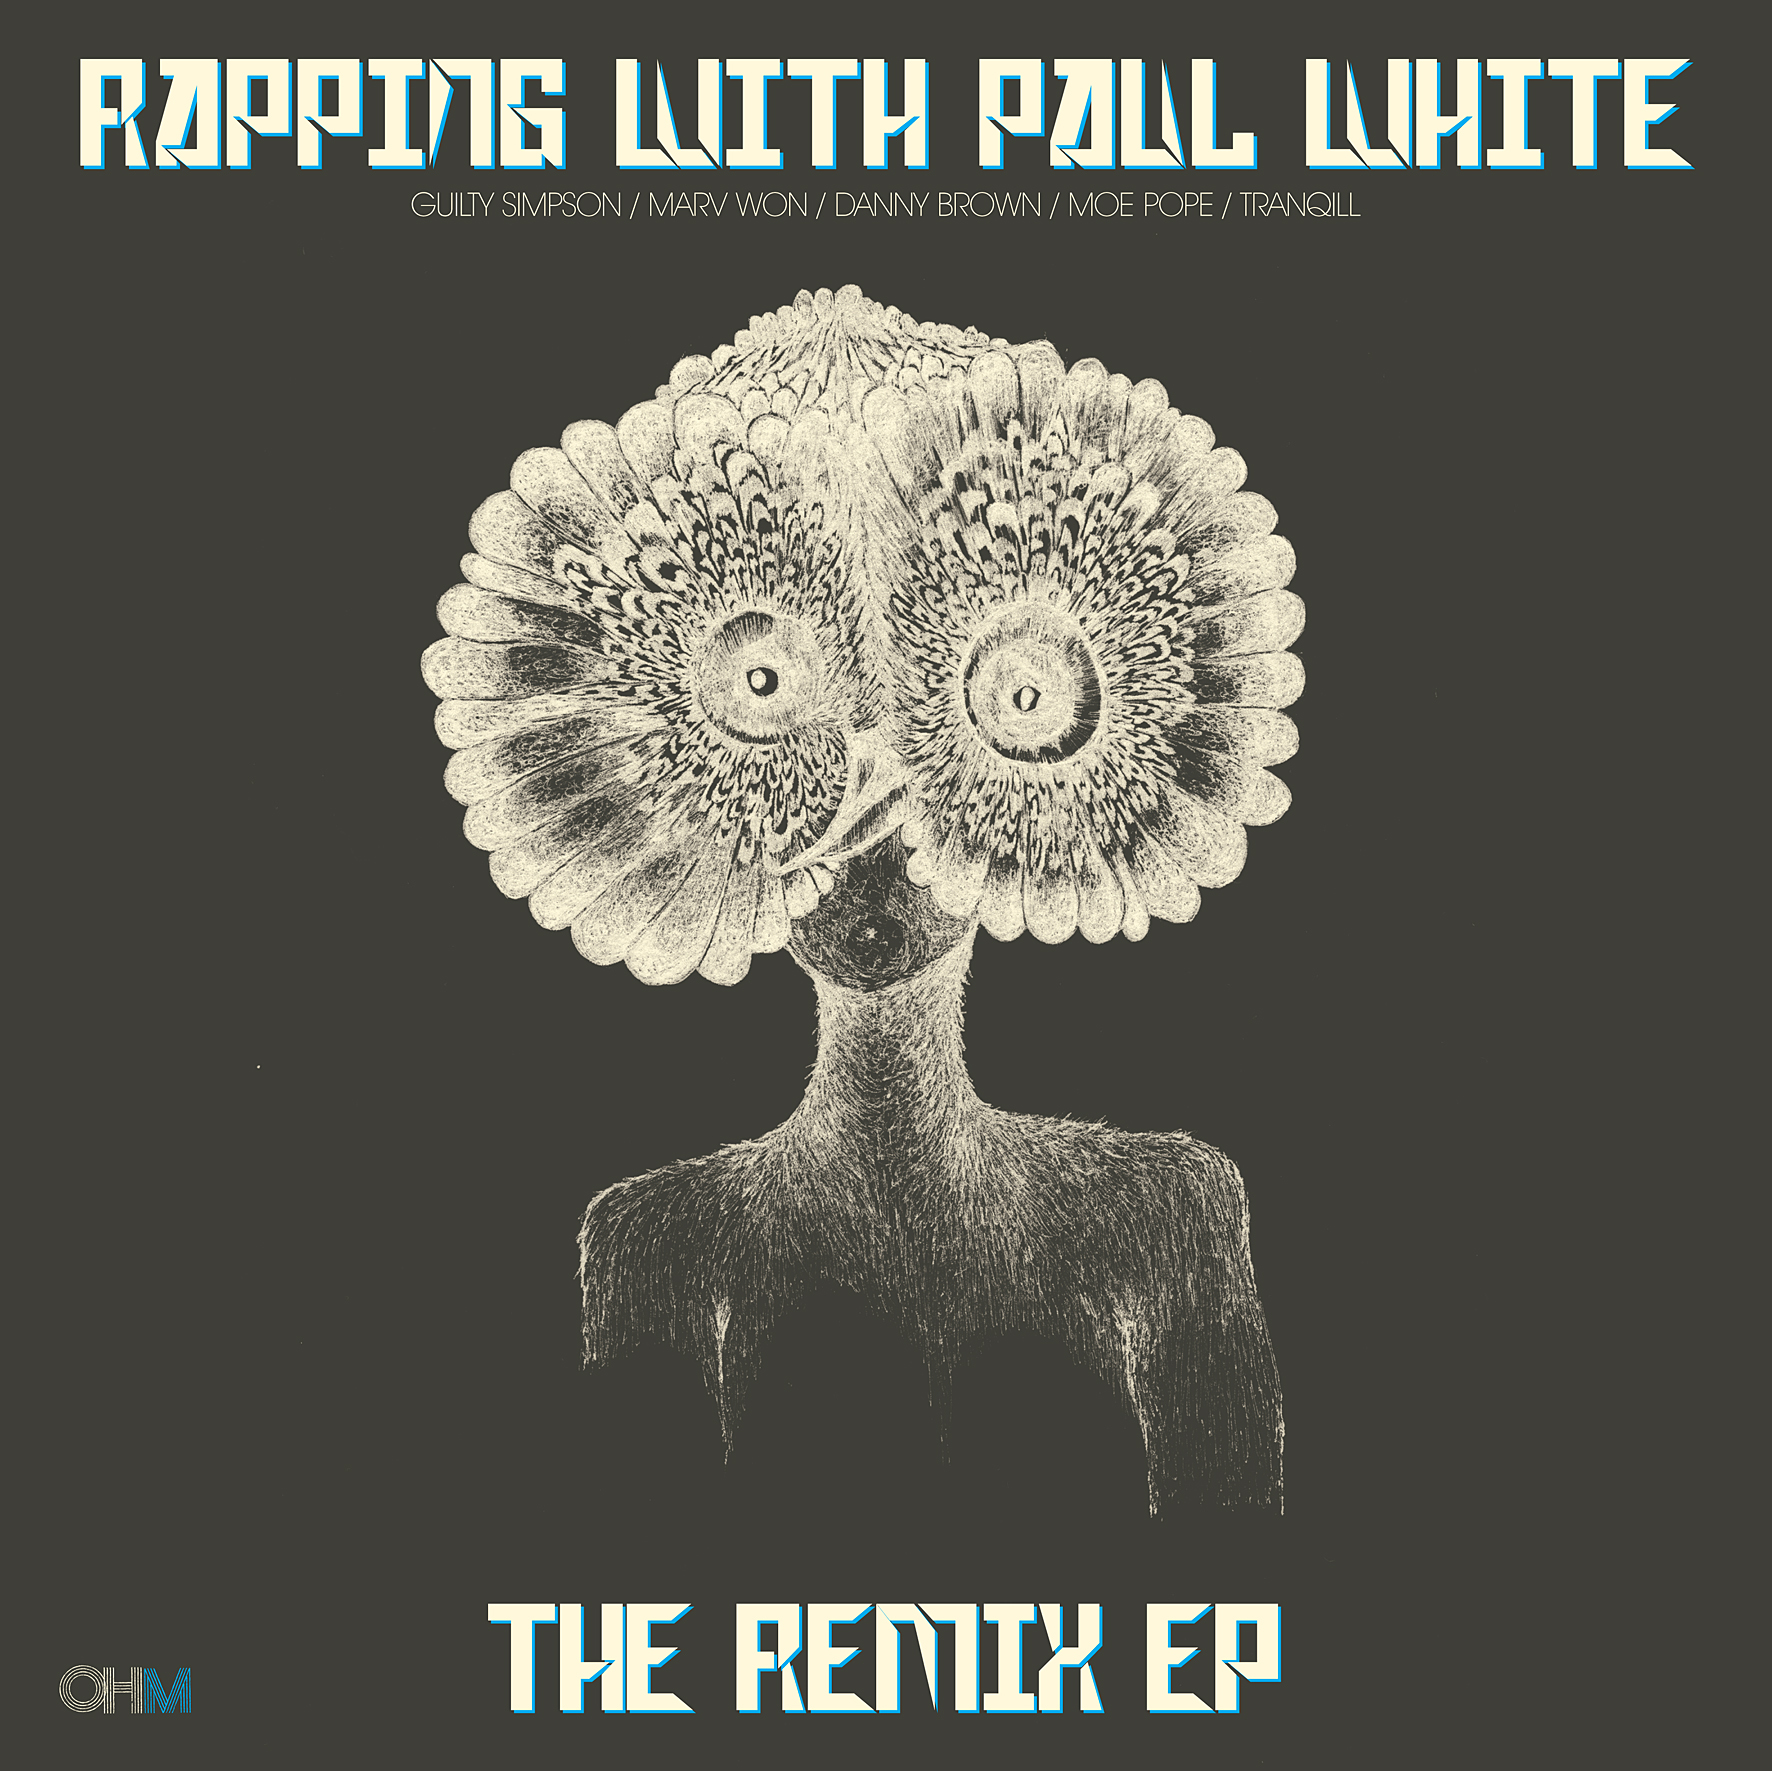 Rapping With Paul White - The Remix EP